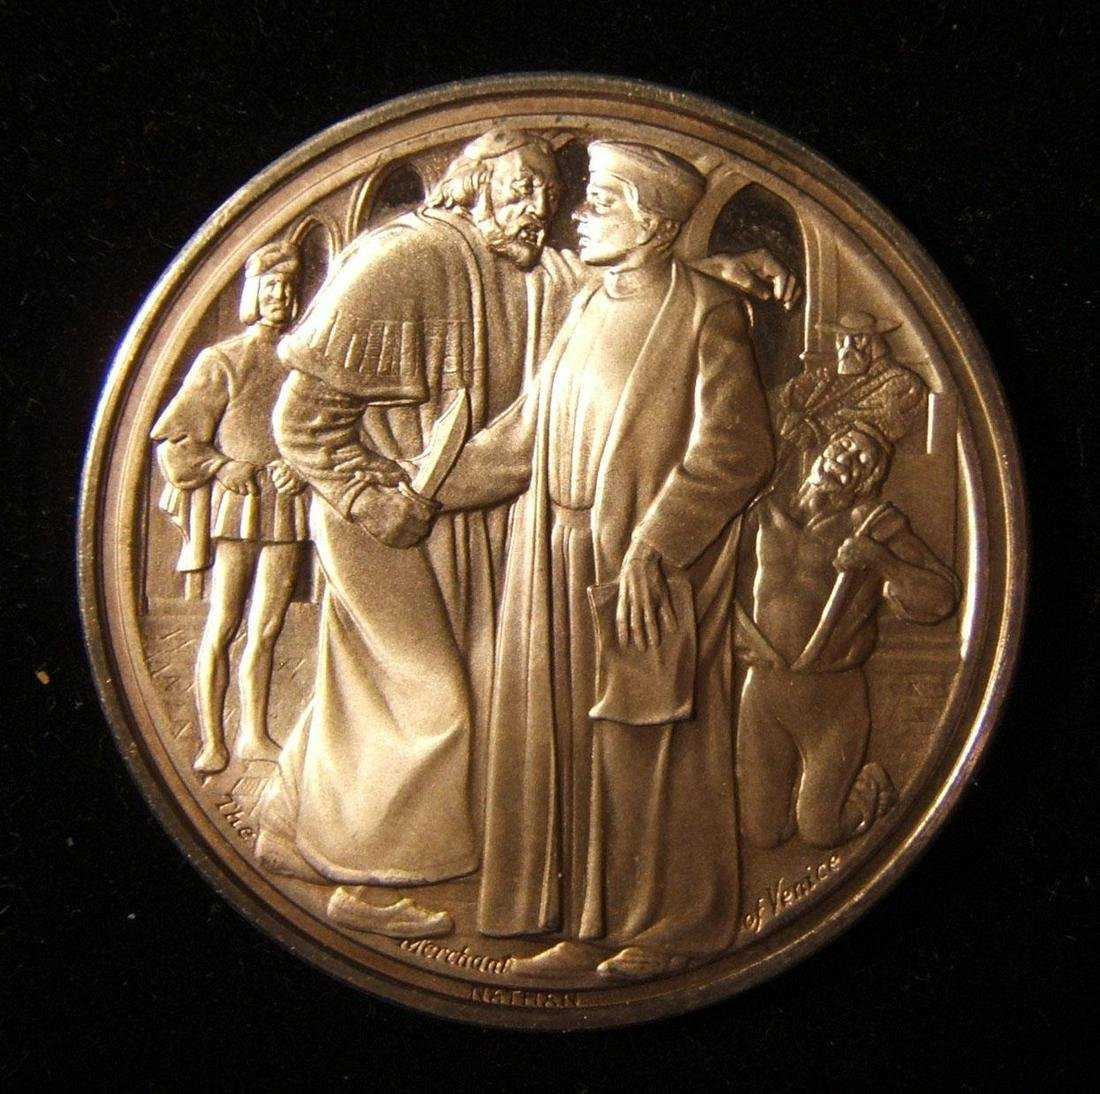 British Merchant of Venice silver Judaica medal by